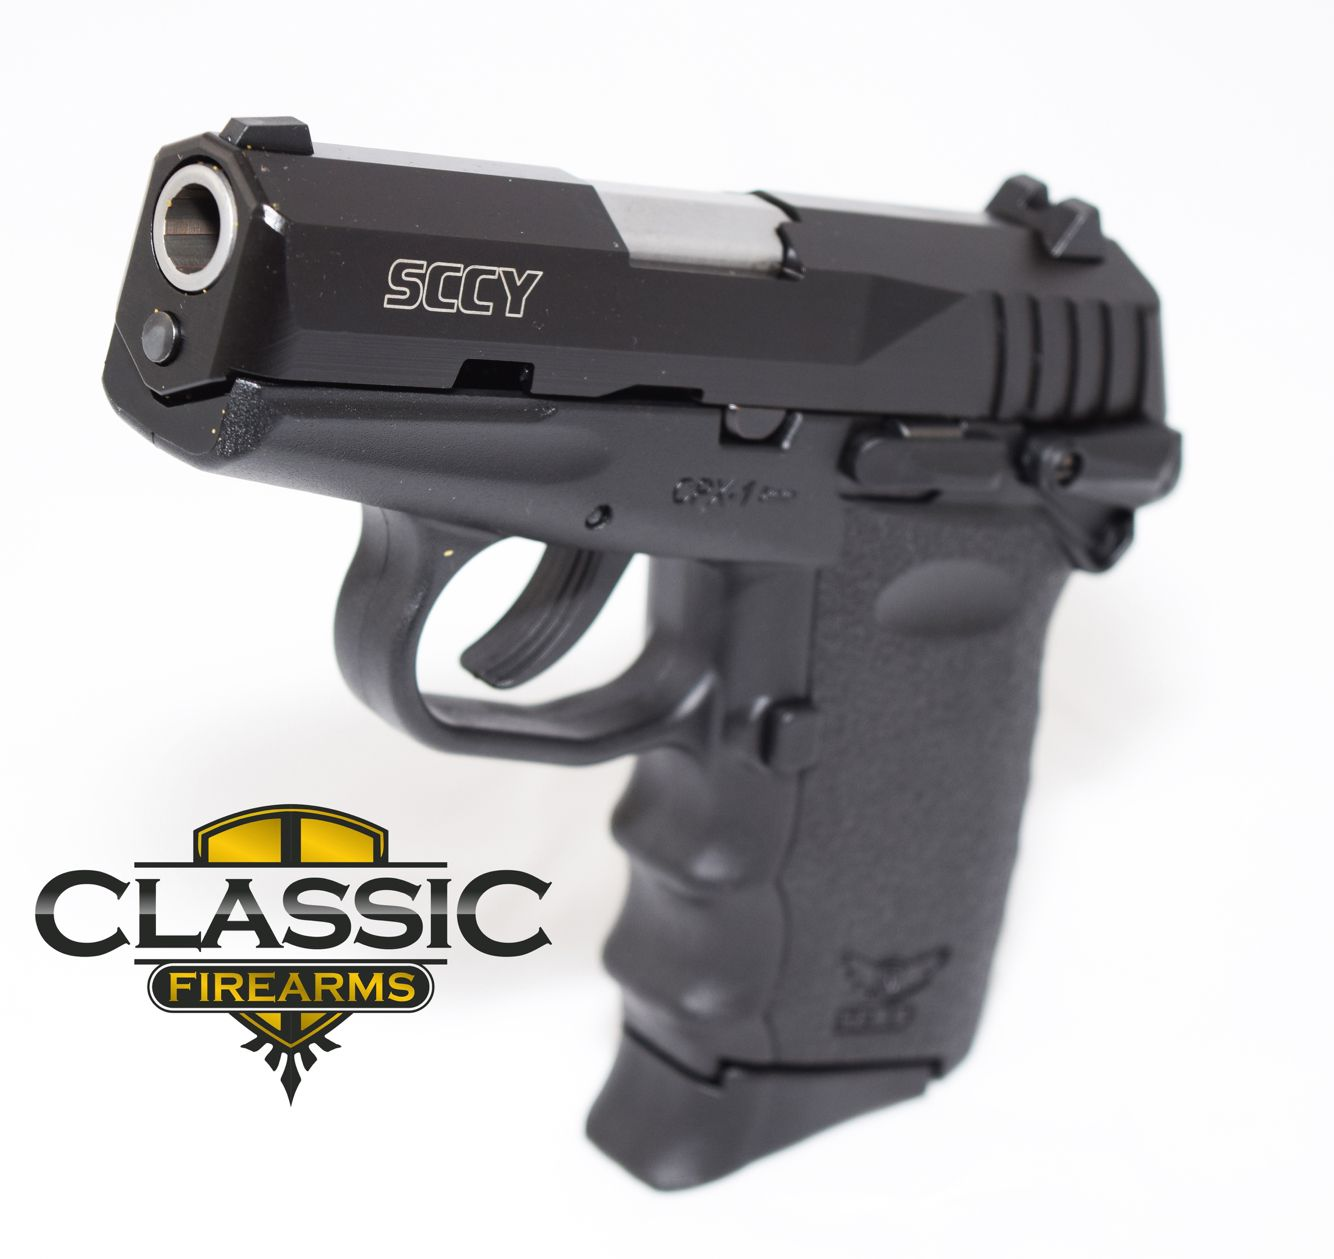 Classic Firearms must have.